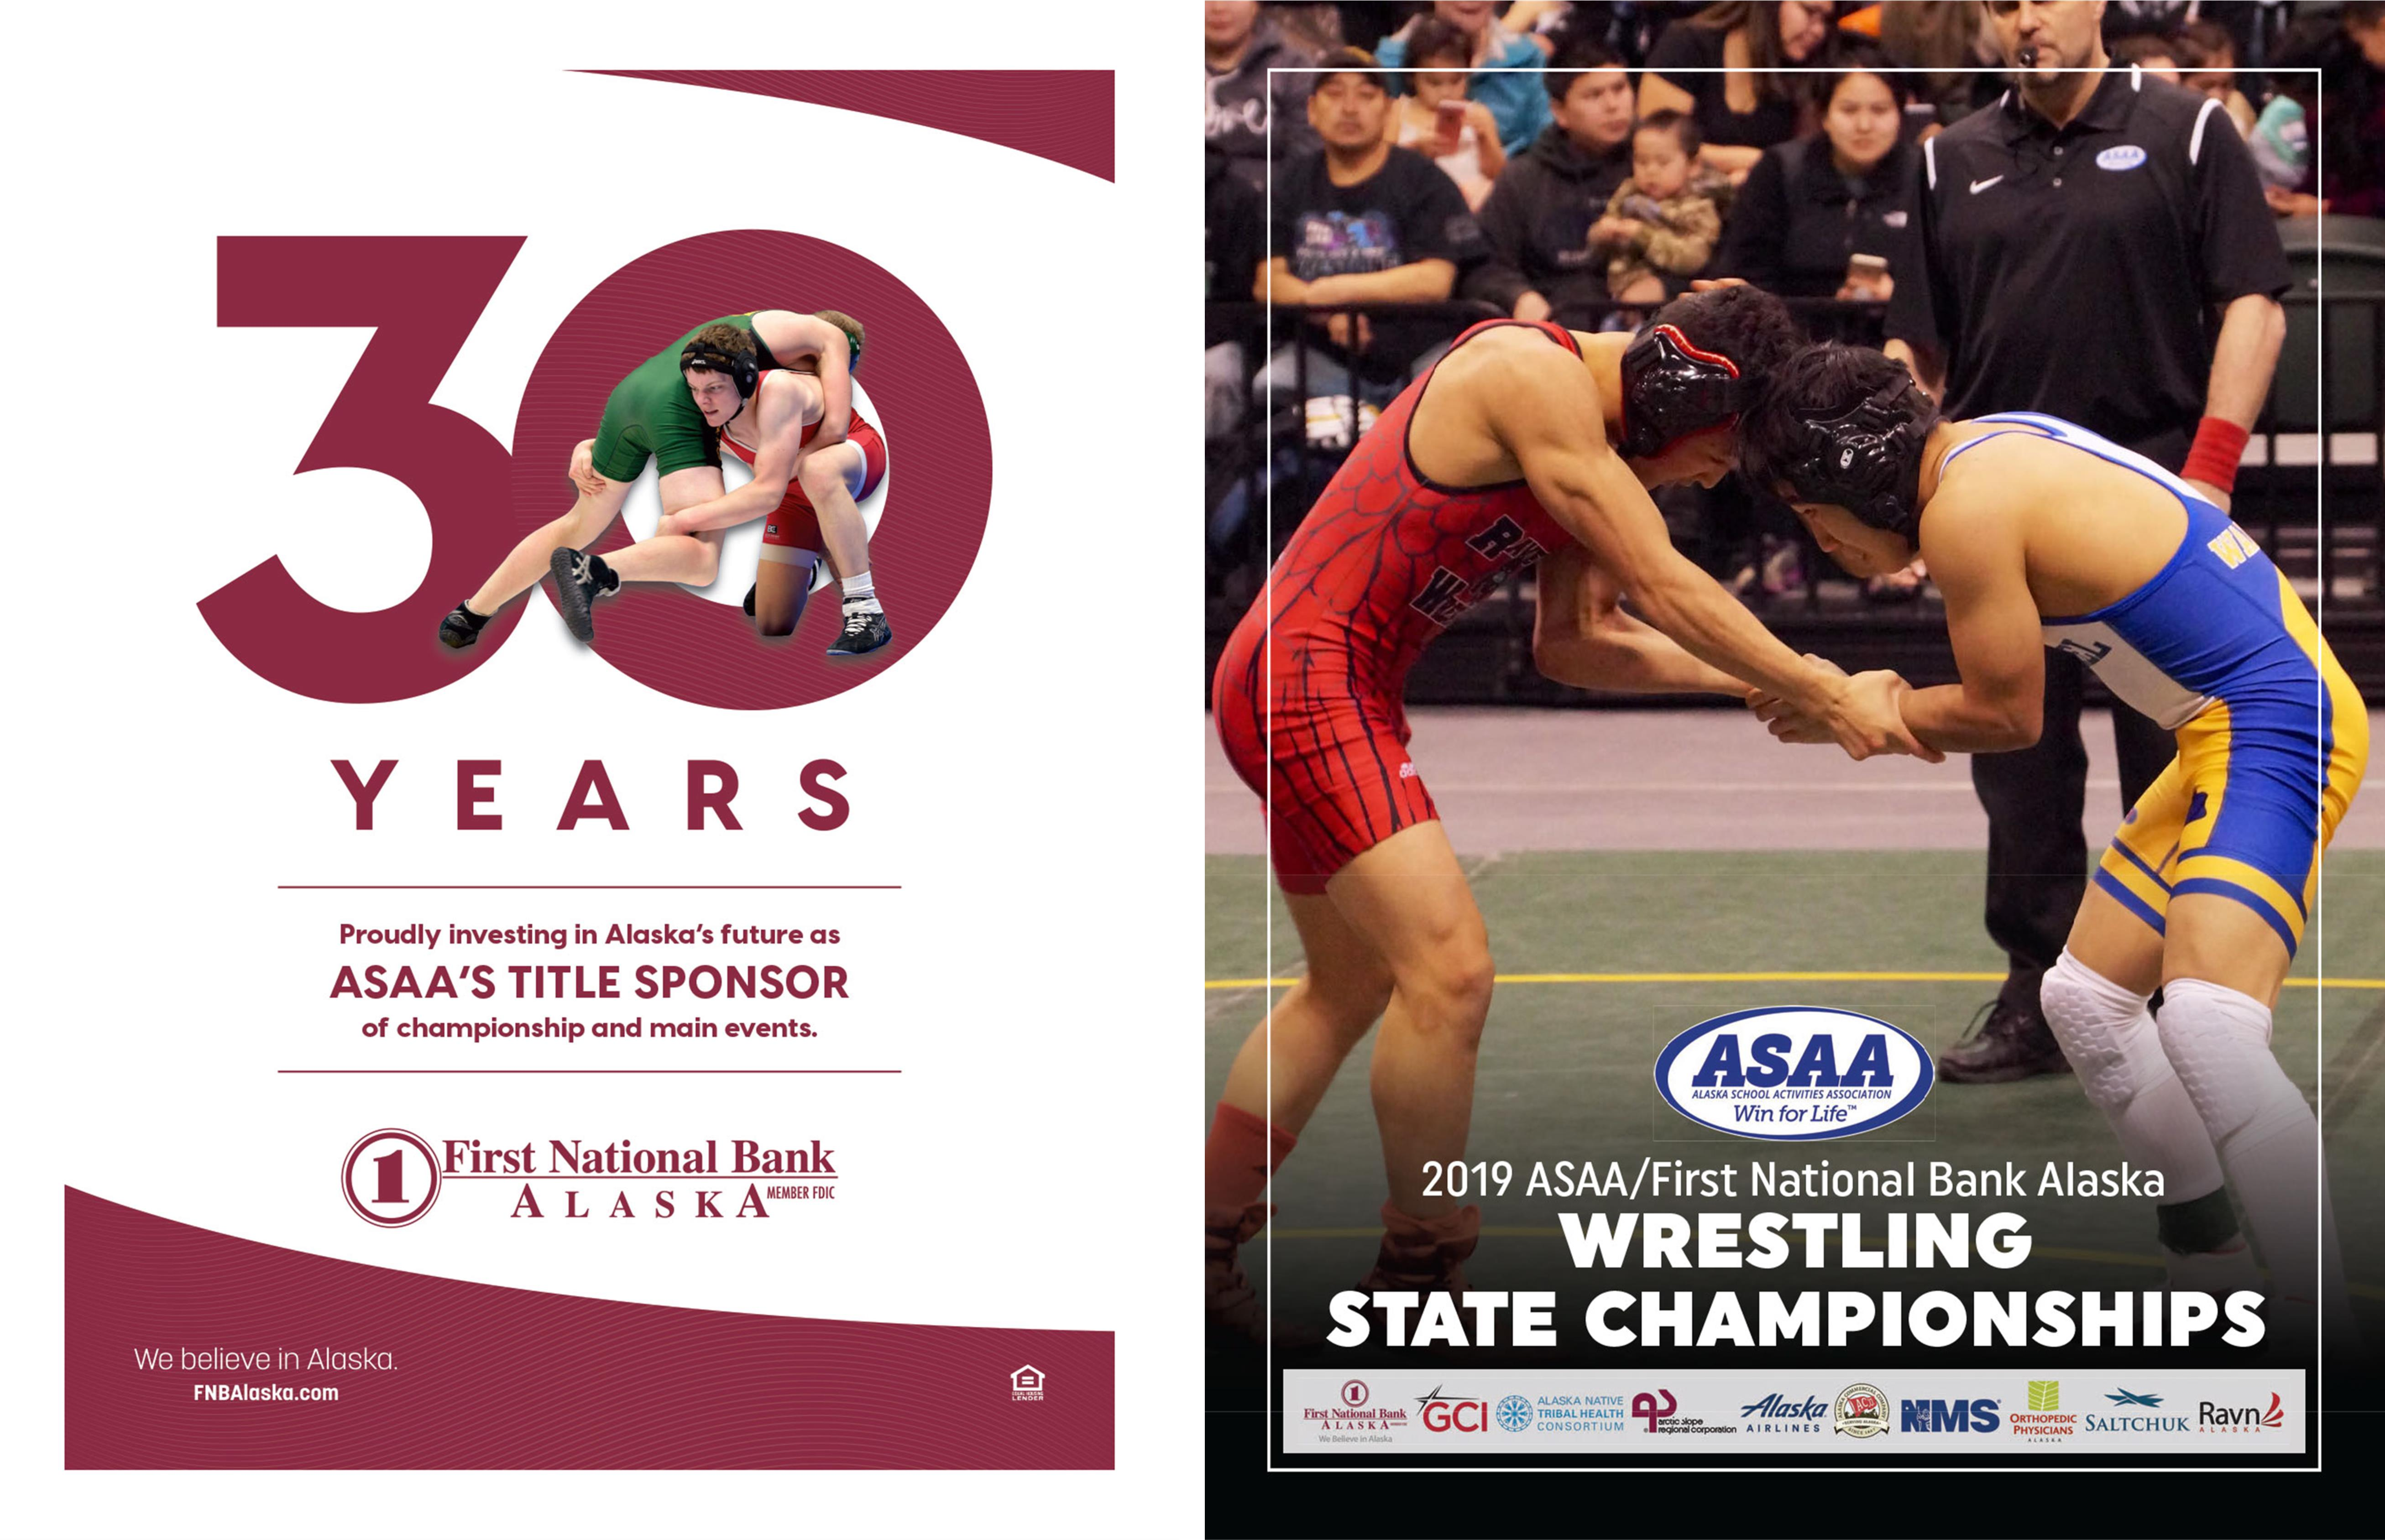 2019 ASAA/First National Bank Alaska Wrestling State Championship Program cover image